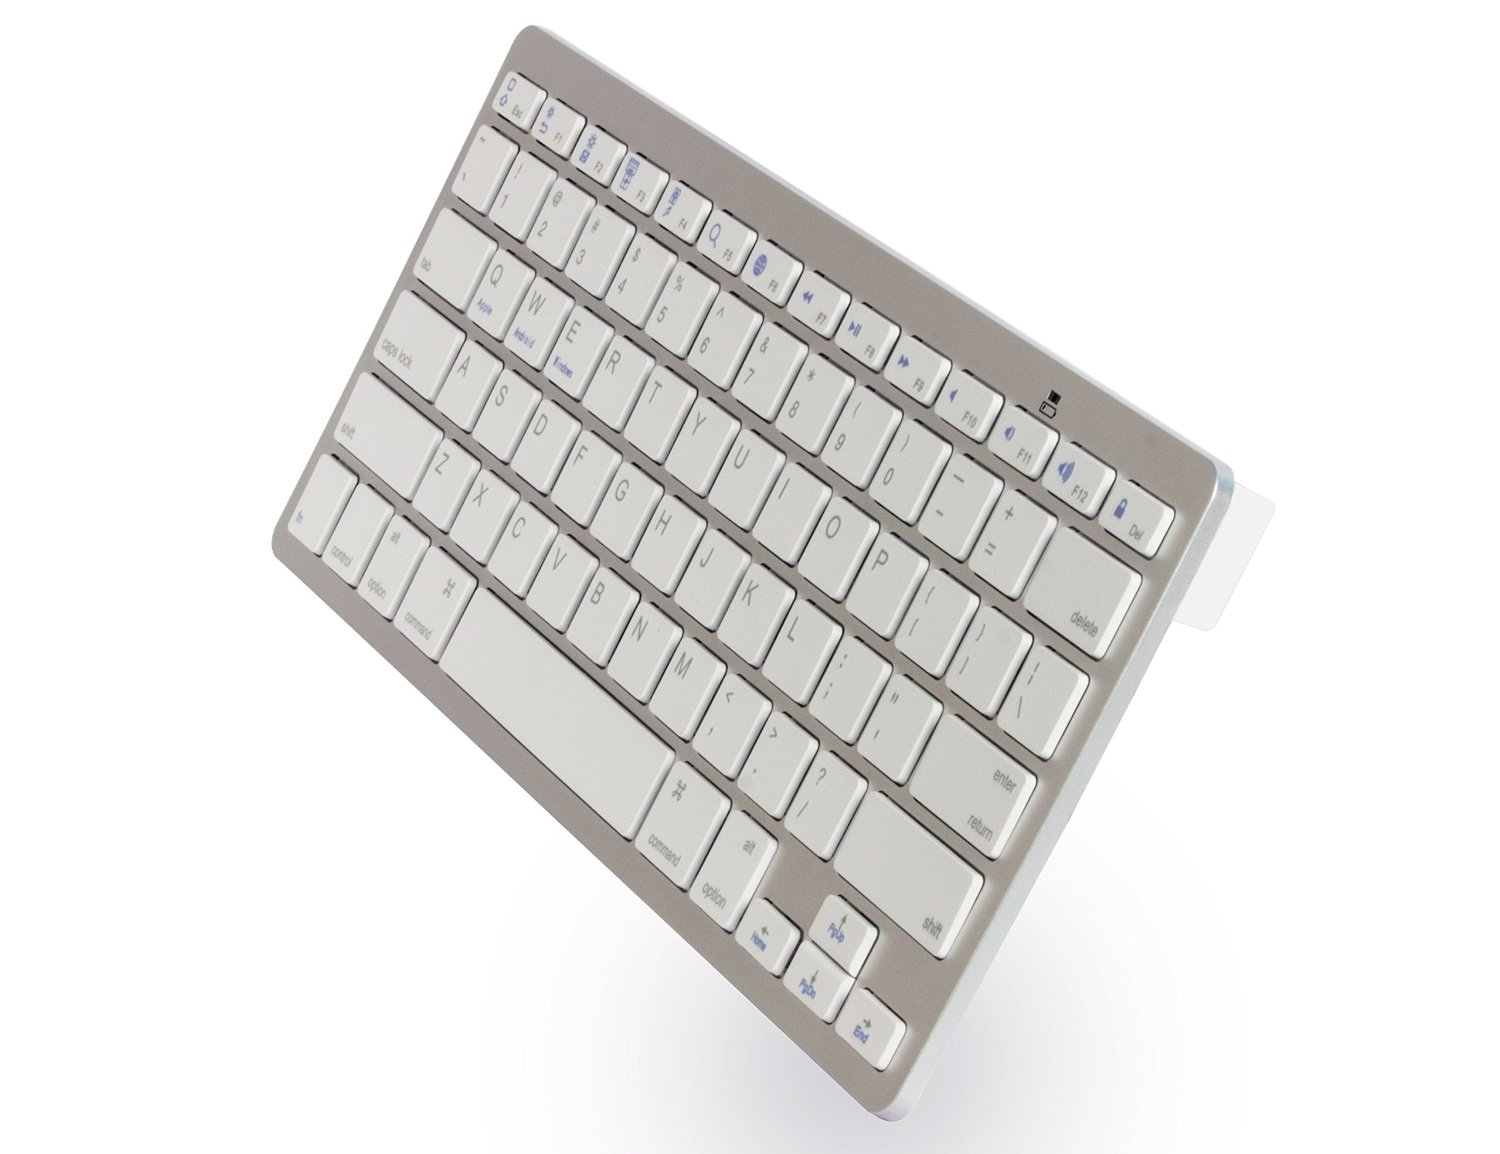 wireless-keyboard-for-all-devices